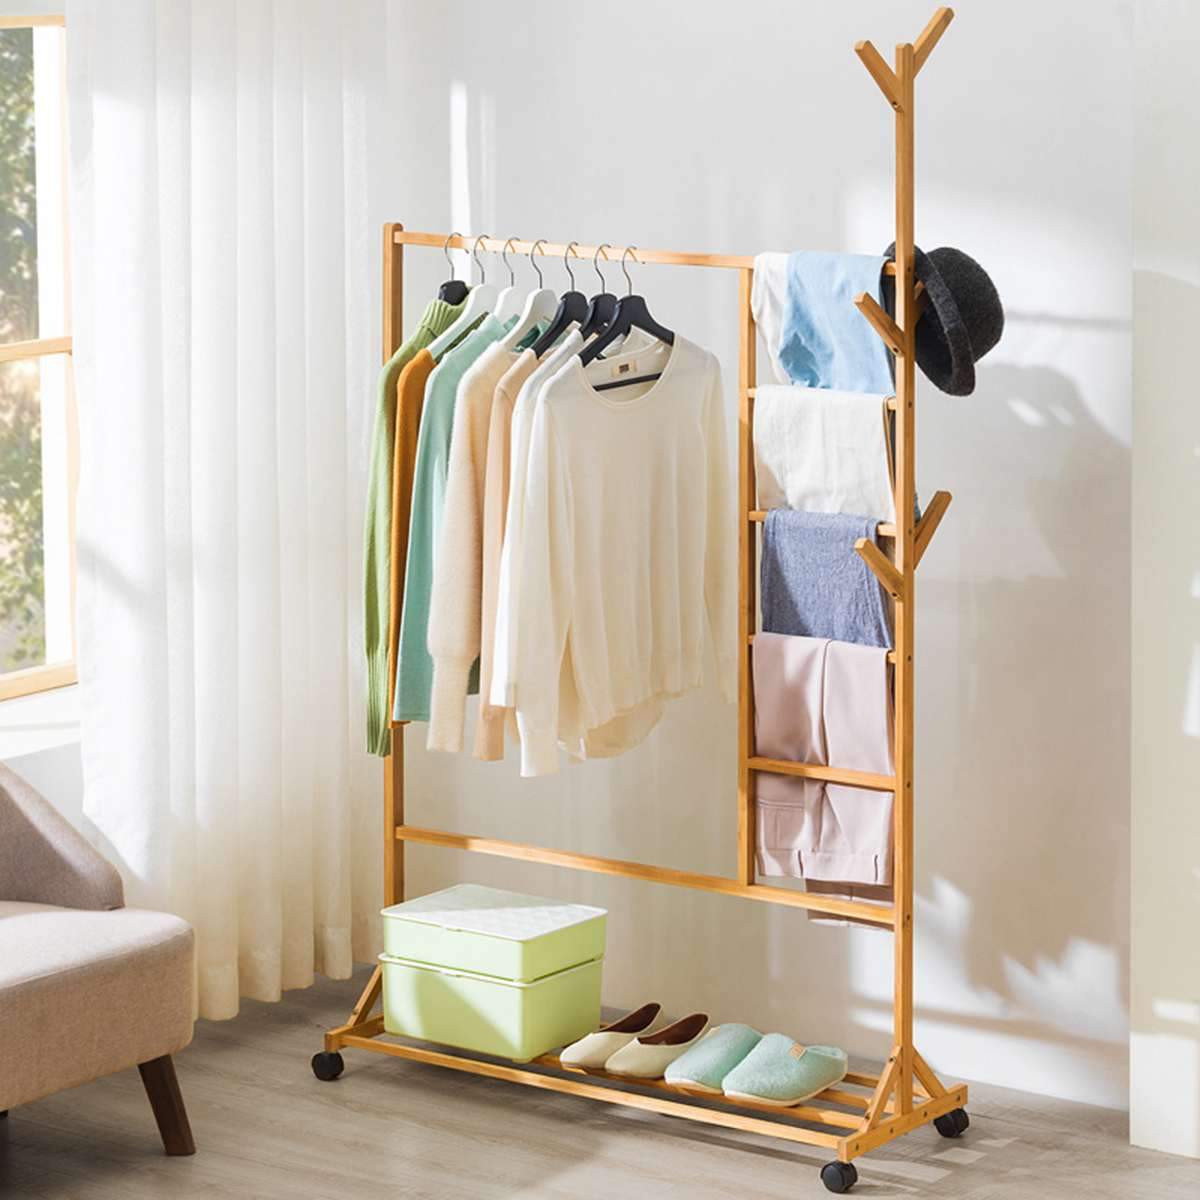 175X100CM Bamboo Multi-function Coat Rack Bedroom Simple Modern Removable Hanger Storage Shelves Household Furniture